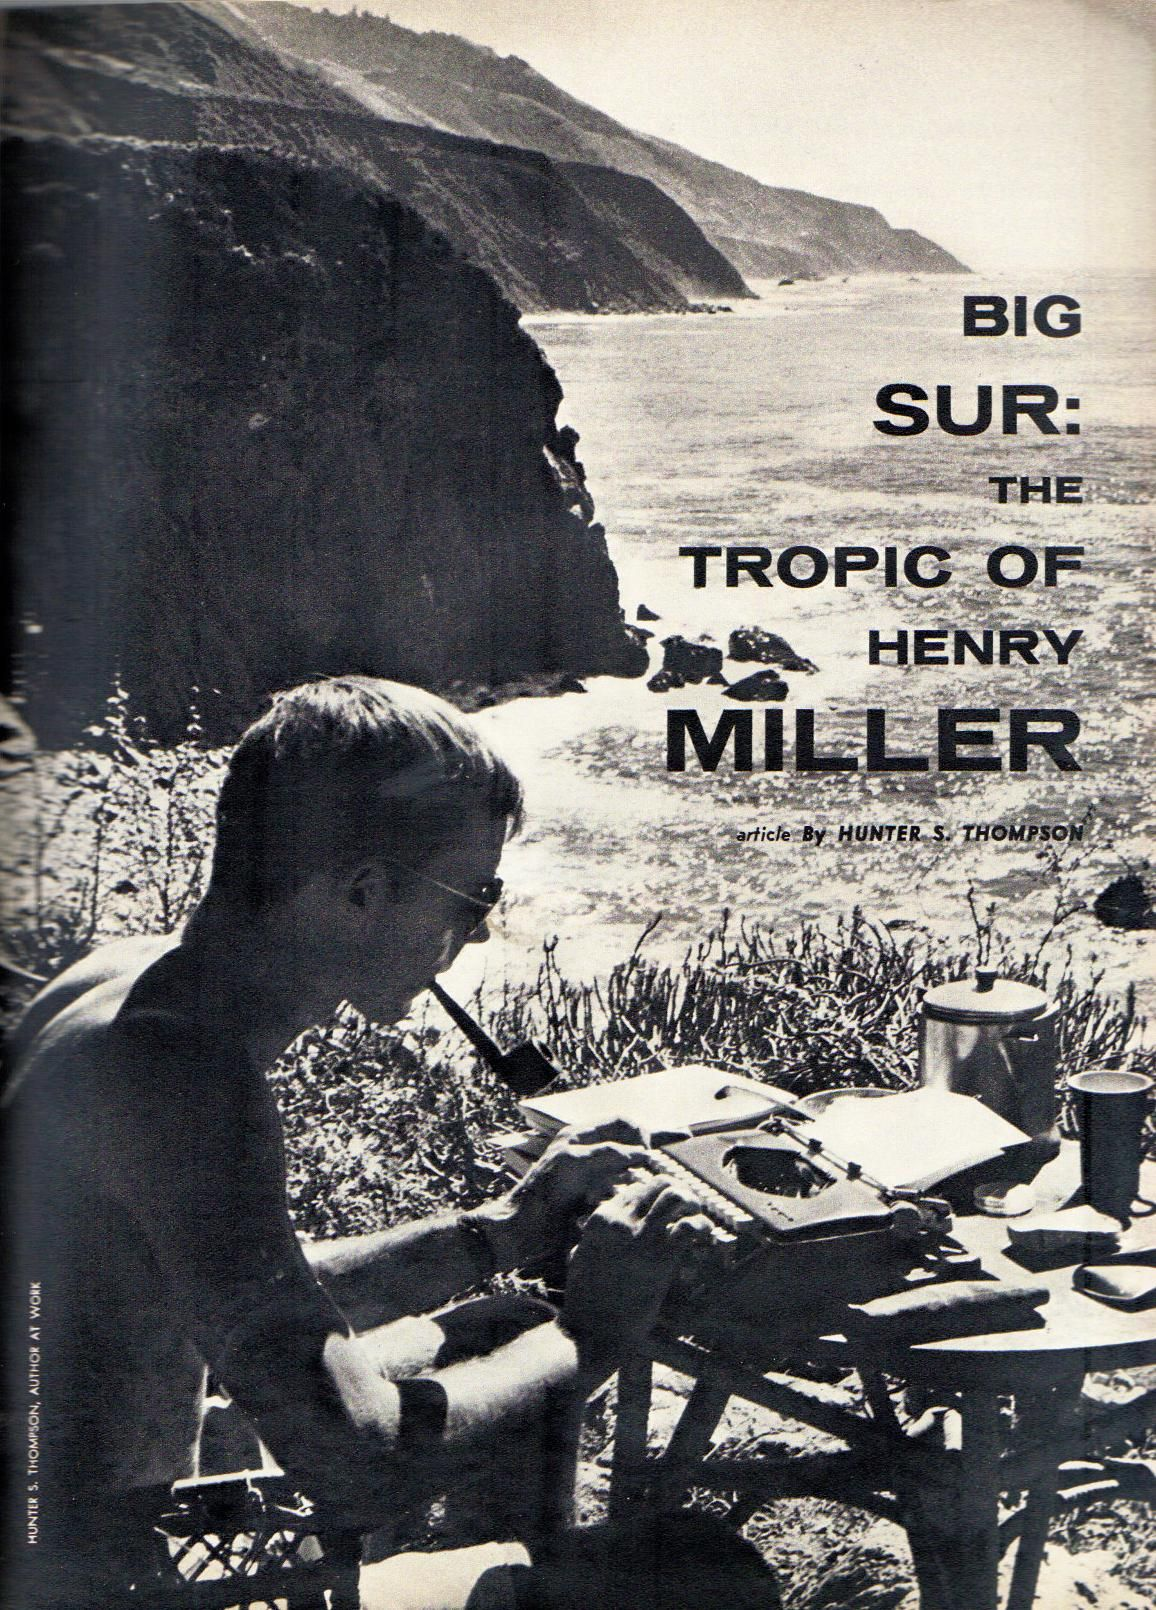 Article by hunter s thompson big sur the tropic of